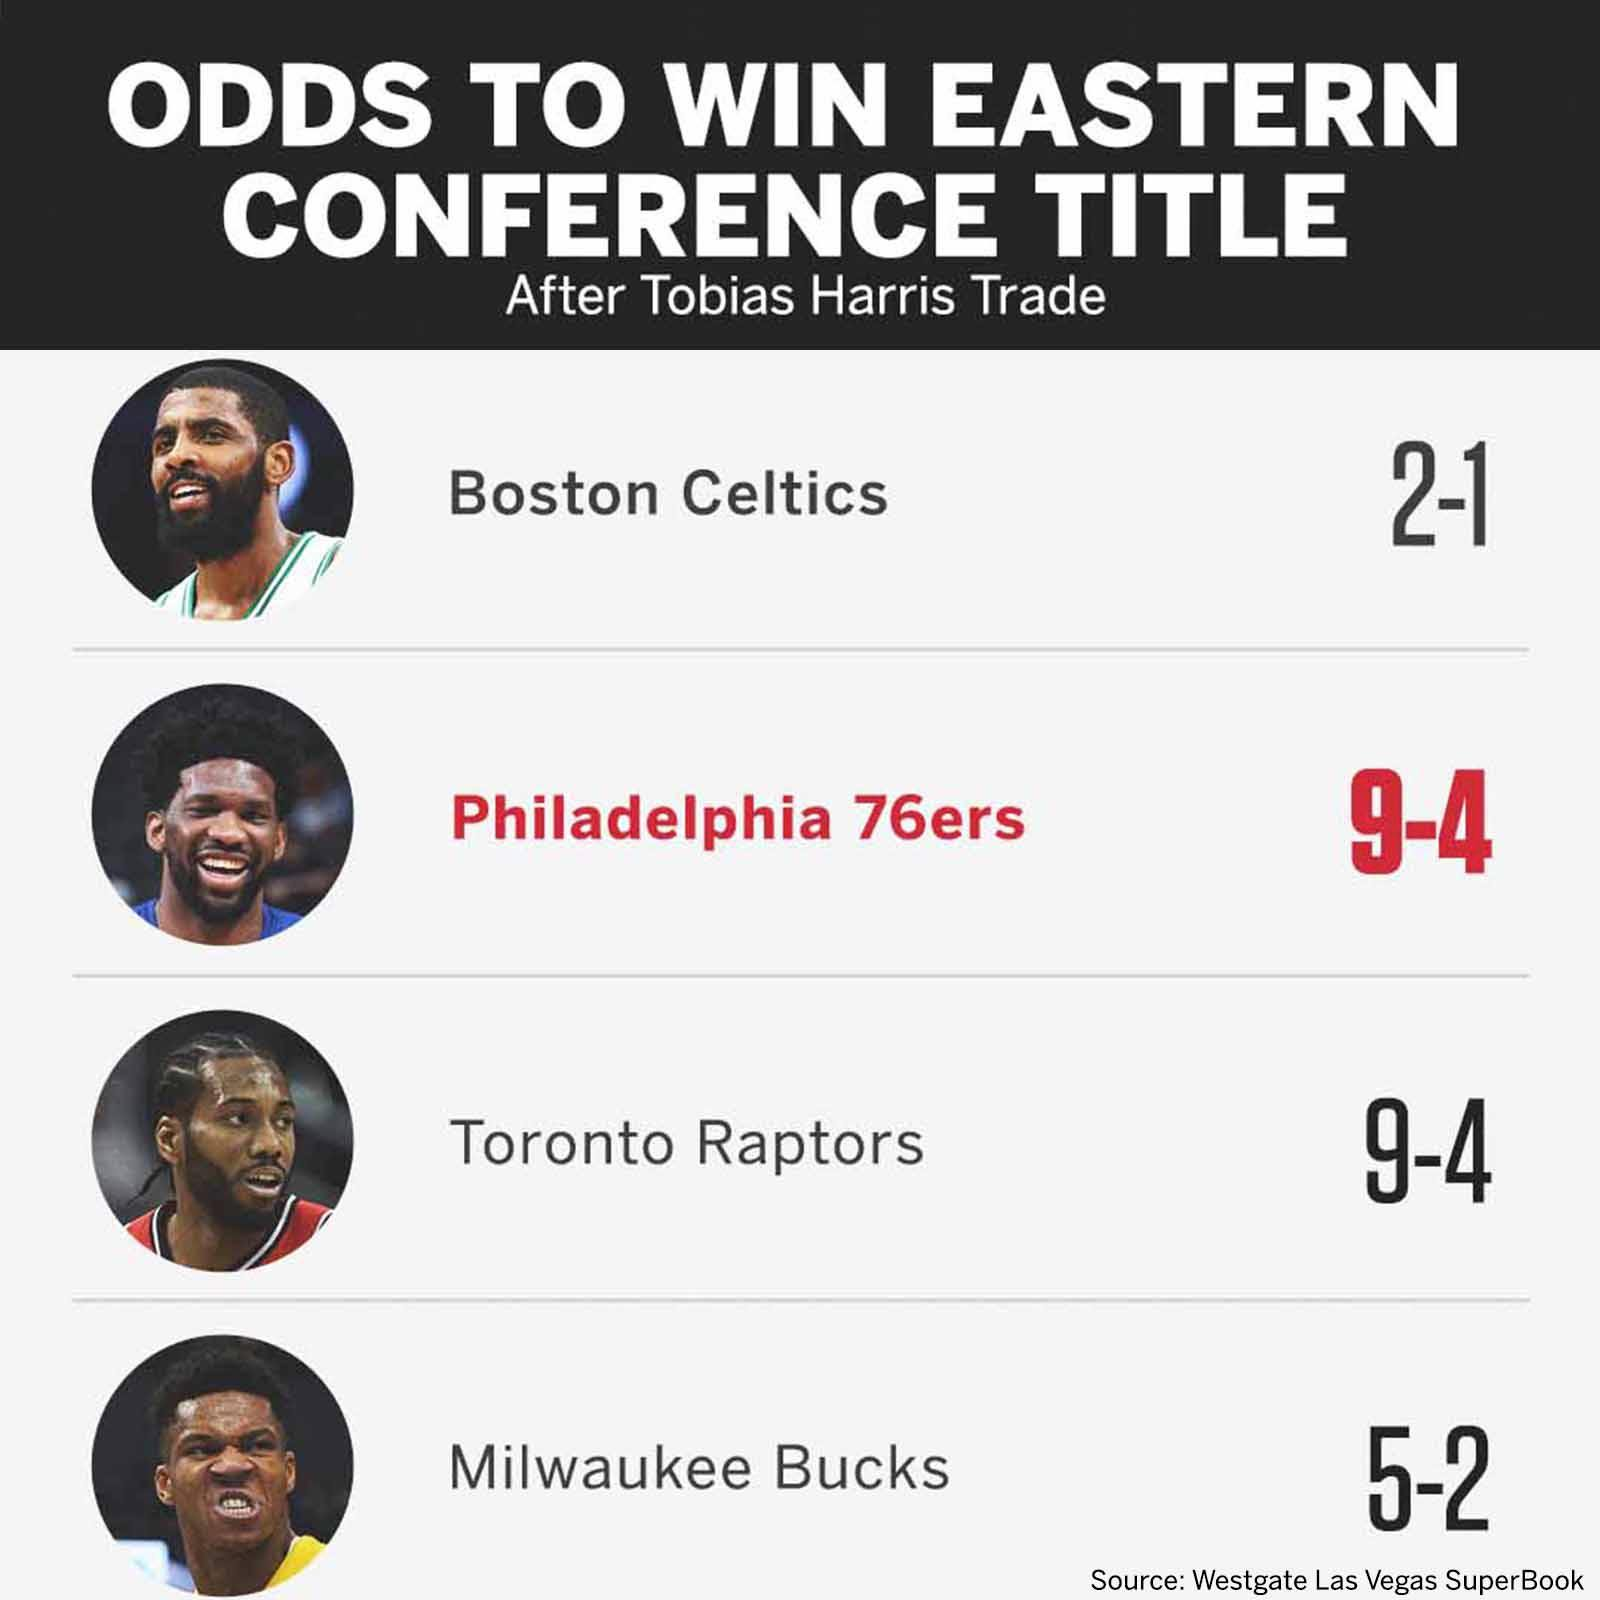 After the Tobias Harris trade, the @sixers' odds to win the East doubled �� https://t.co/wvec636L7k